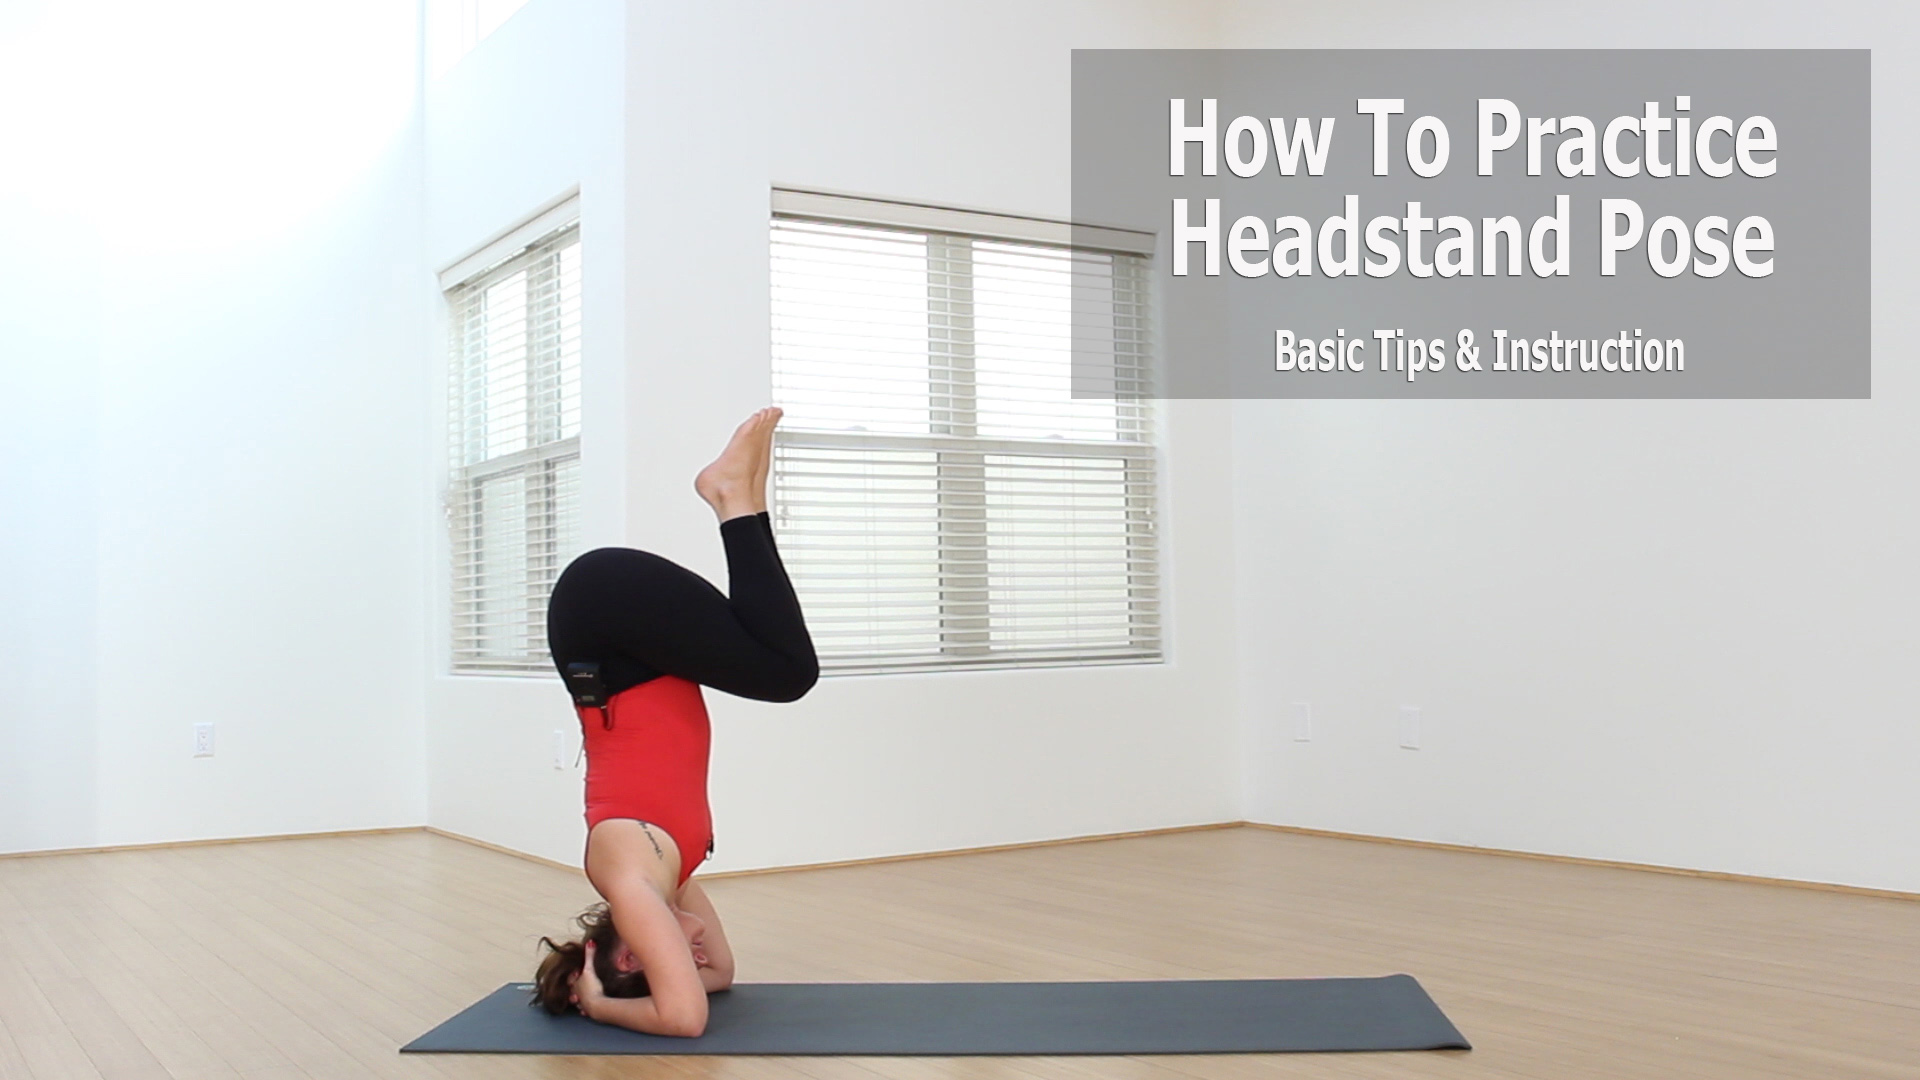 Headstand Pose | Upside Down With The King Of All Yoga Poses